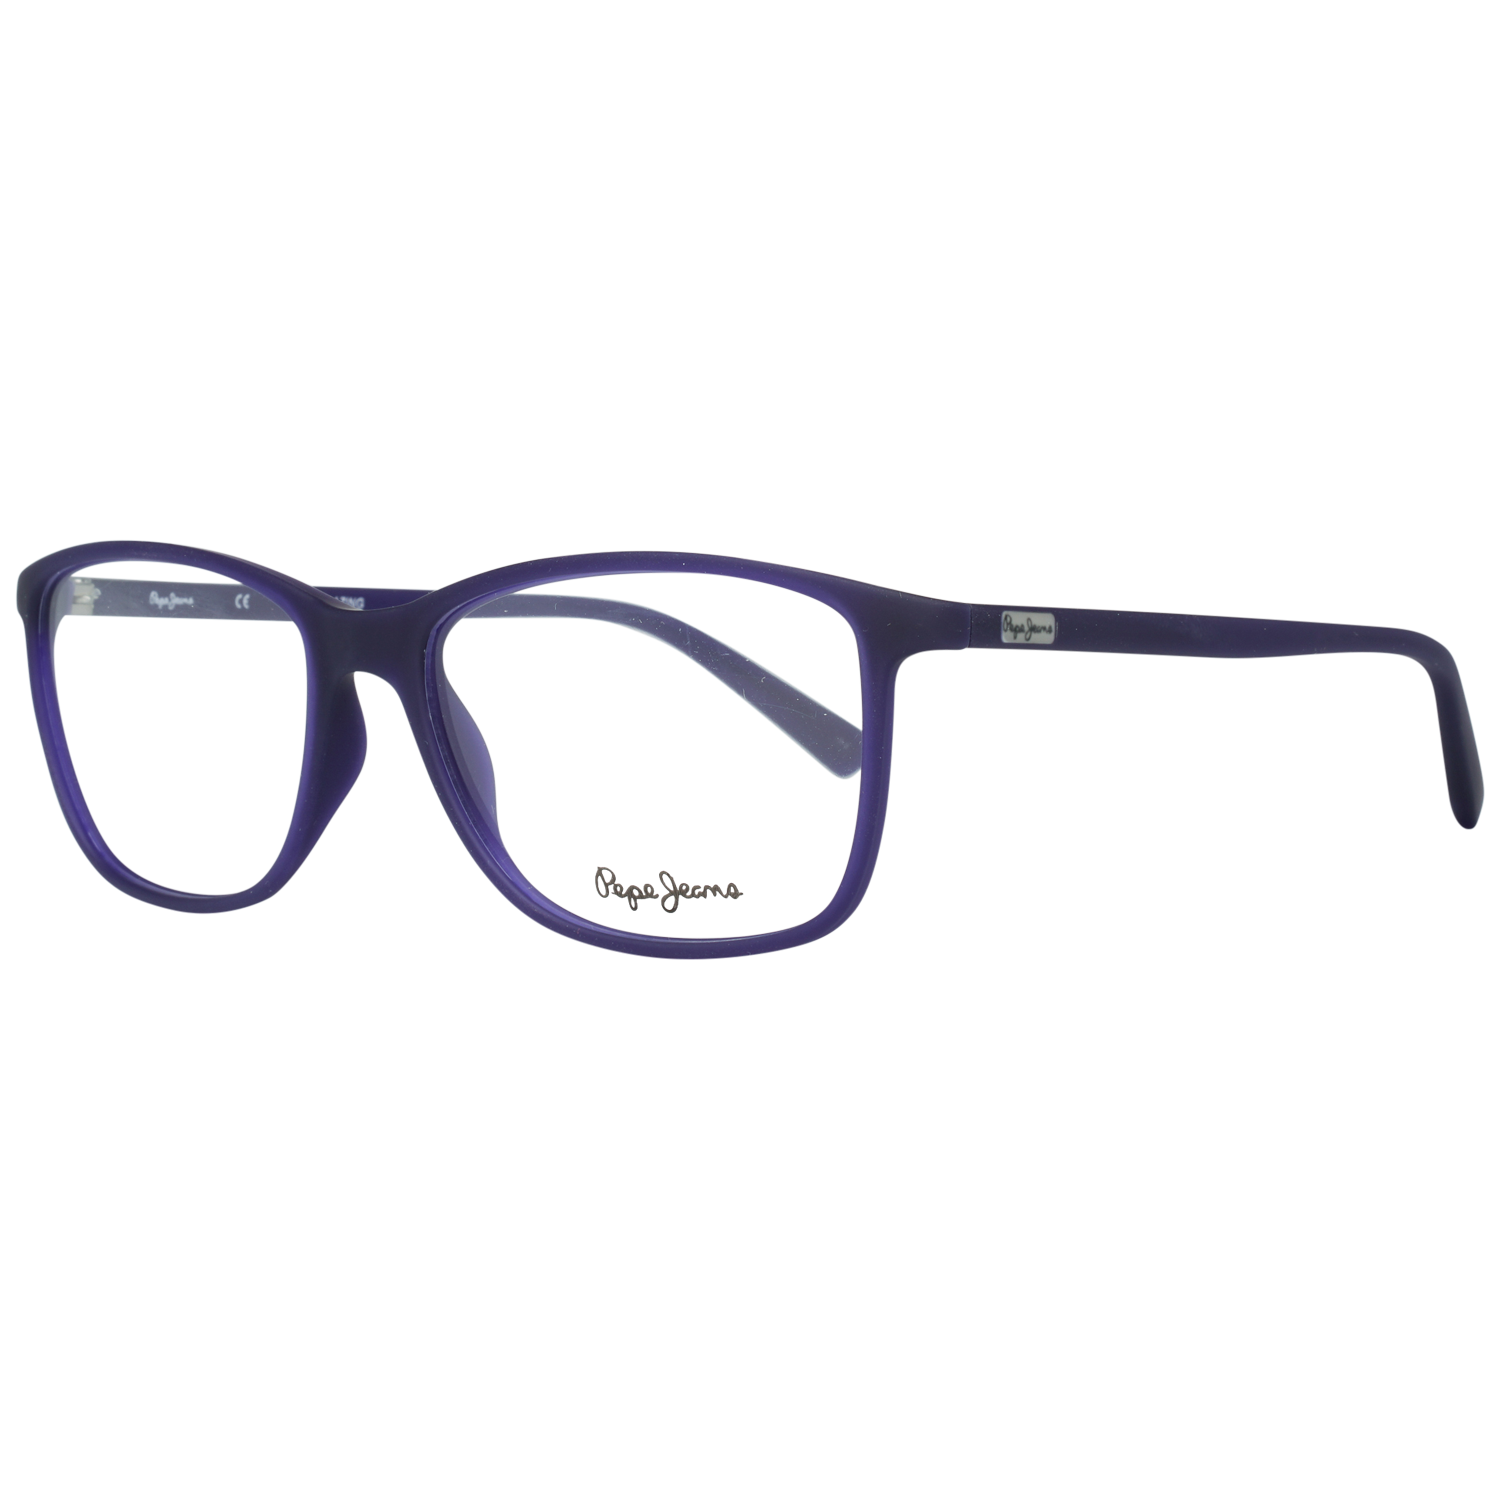 Pepe Jeans Optical Frame PJ3128 C6 53 Autumn Women Purple